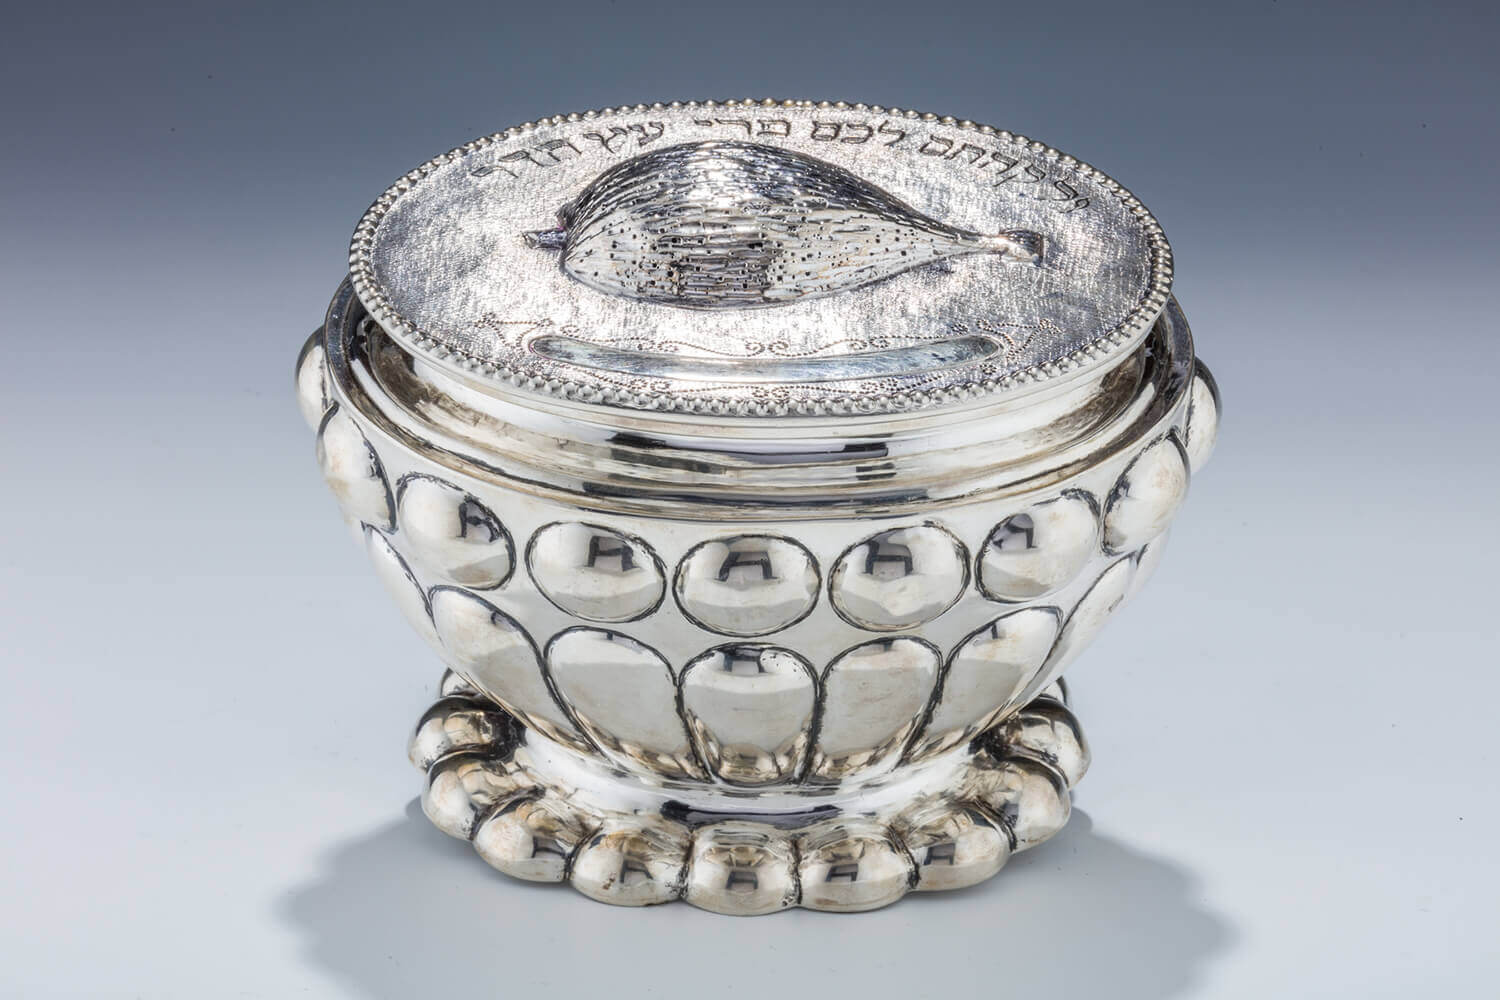 075. A LARGE SILVER ETROG BOX